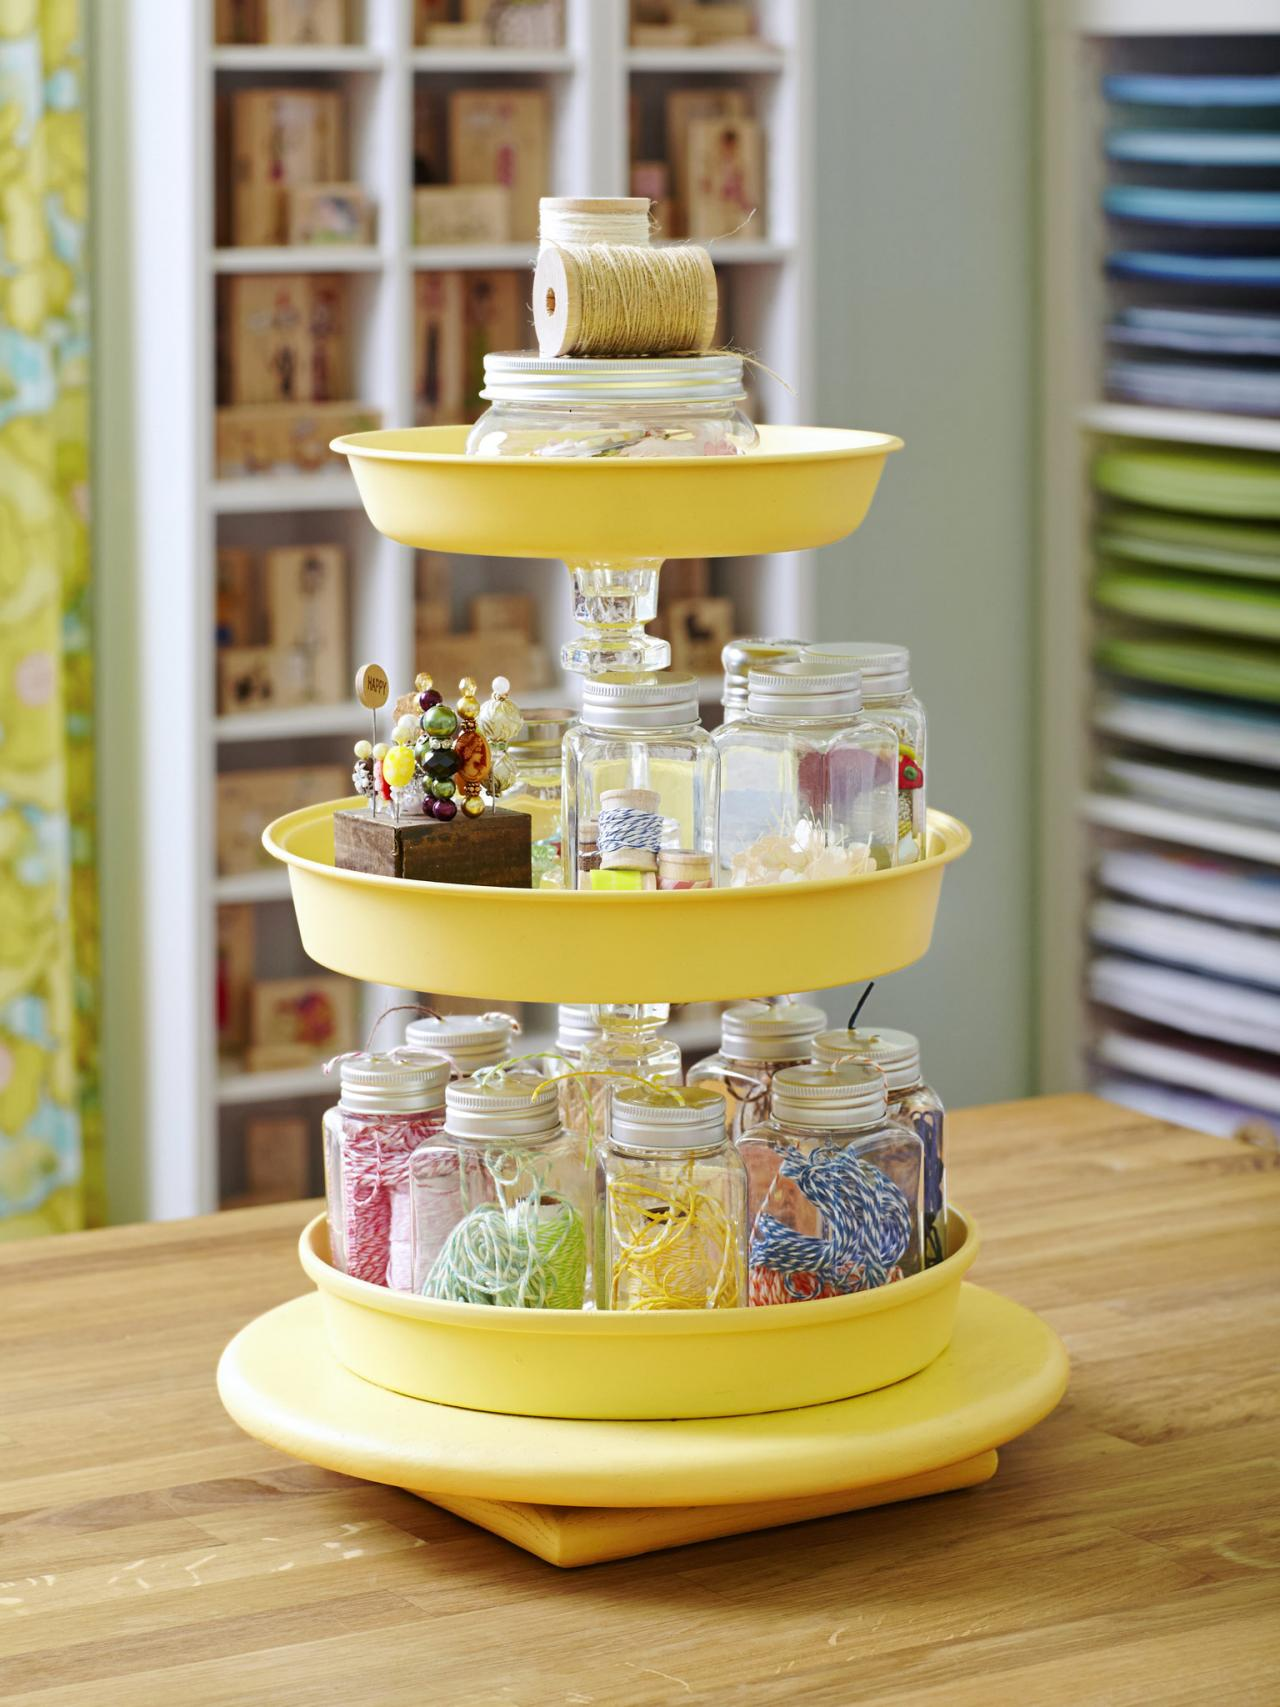 Lazy Susan Tiered ORganizor